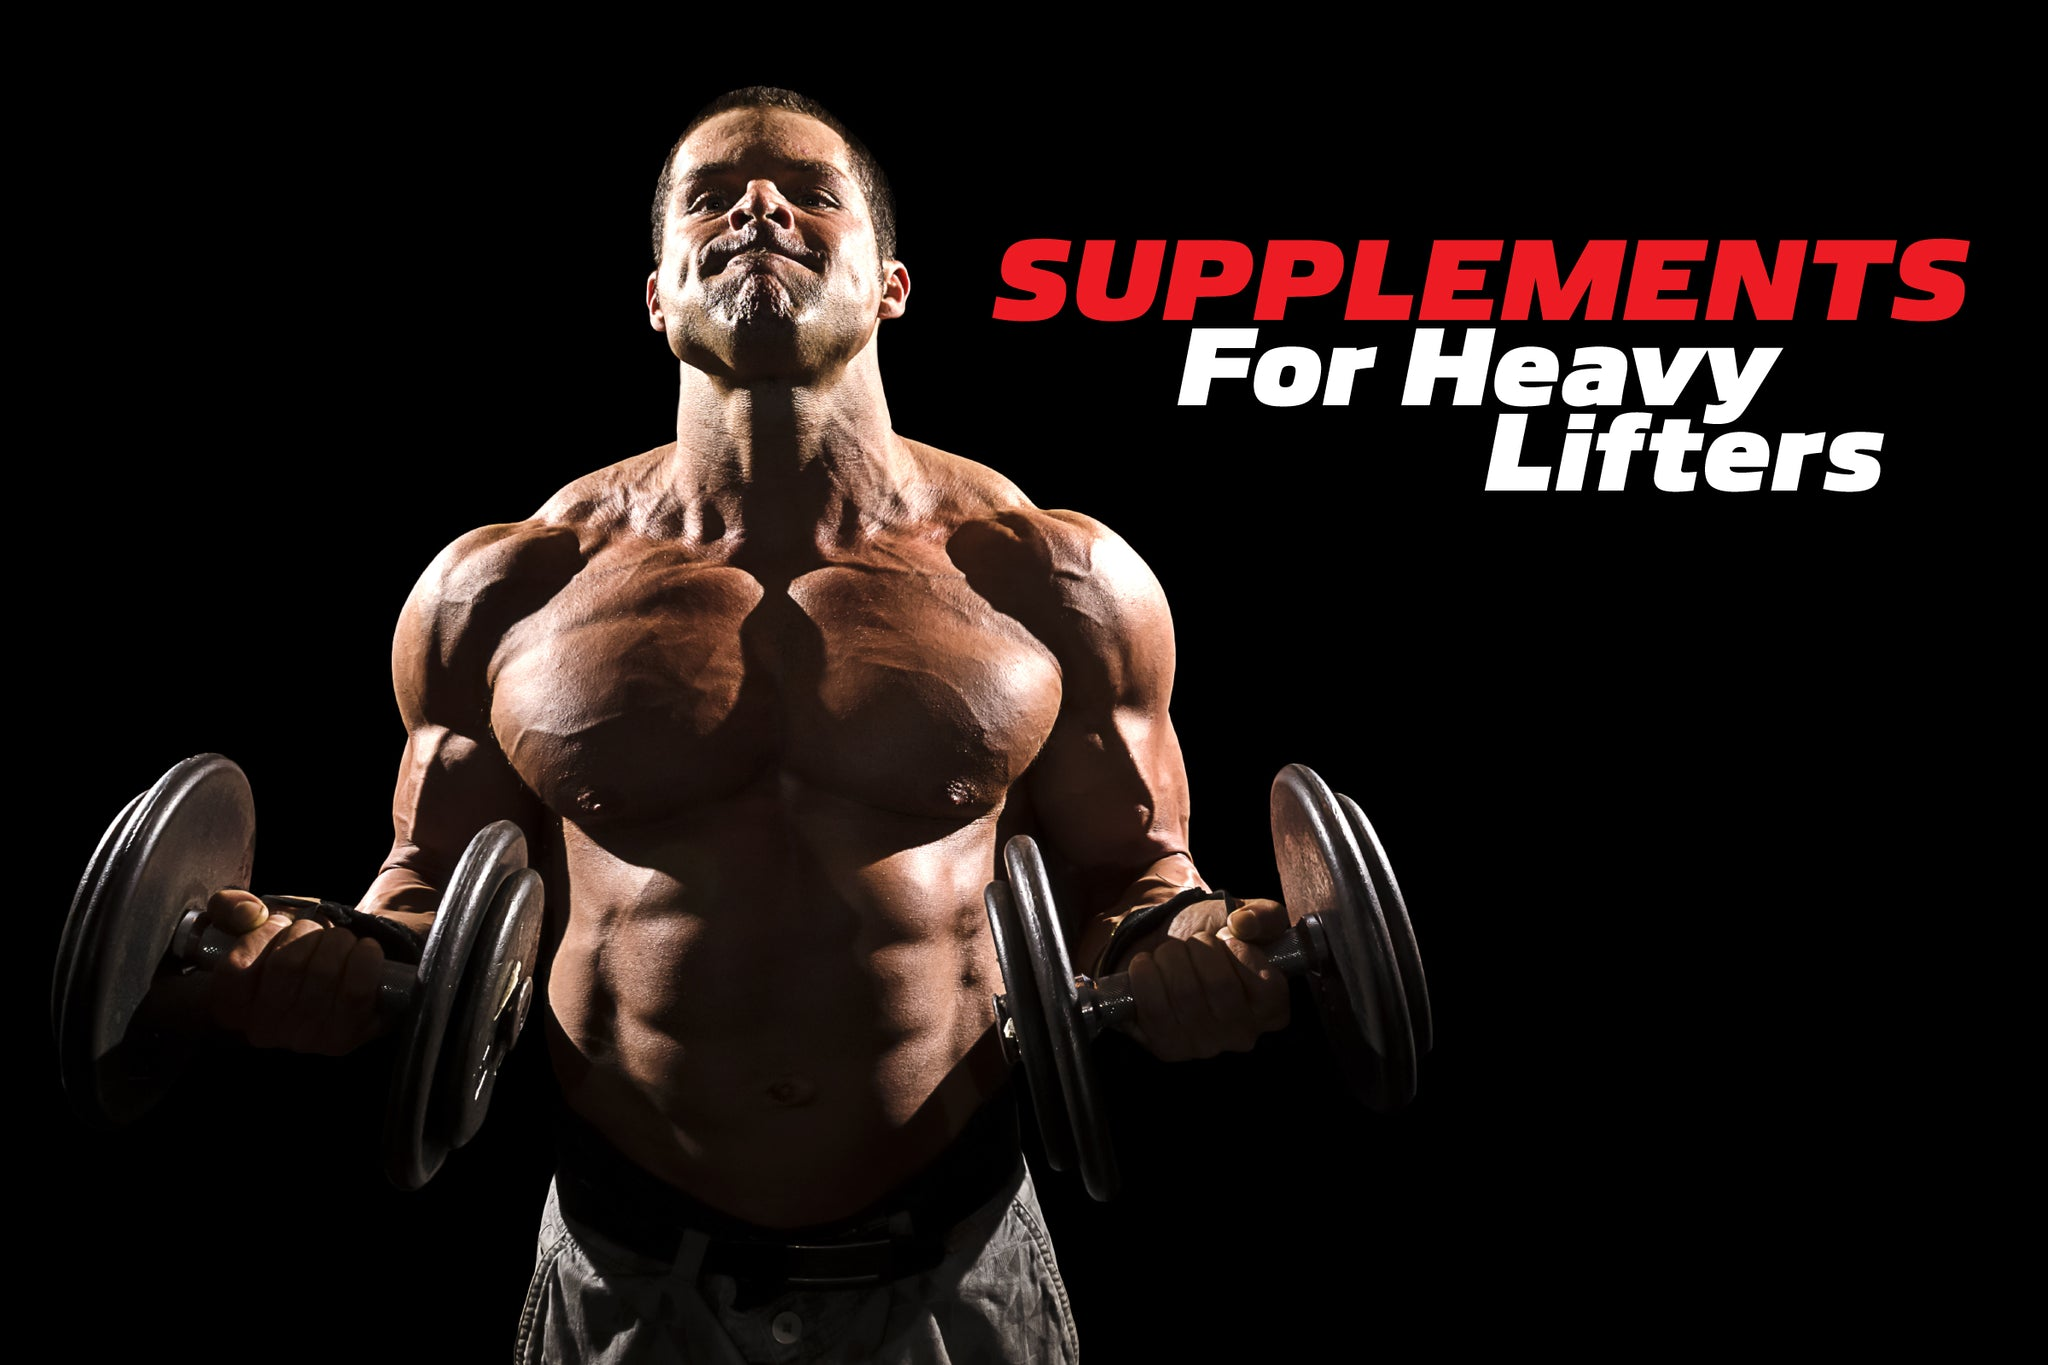 5 Supplements Every Lifter Needs